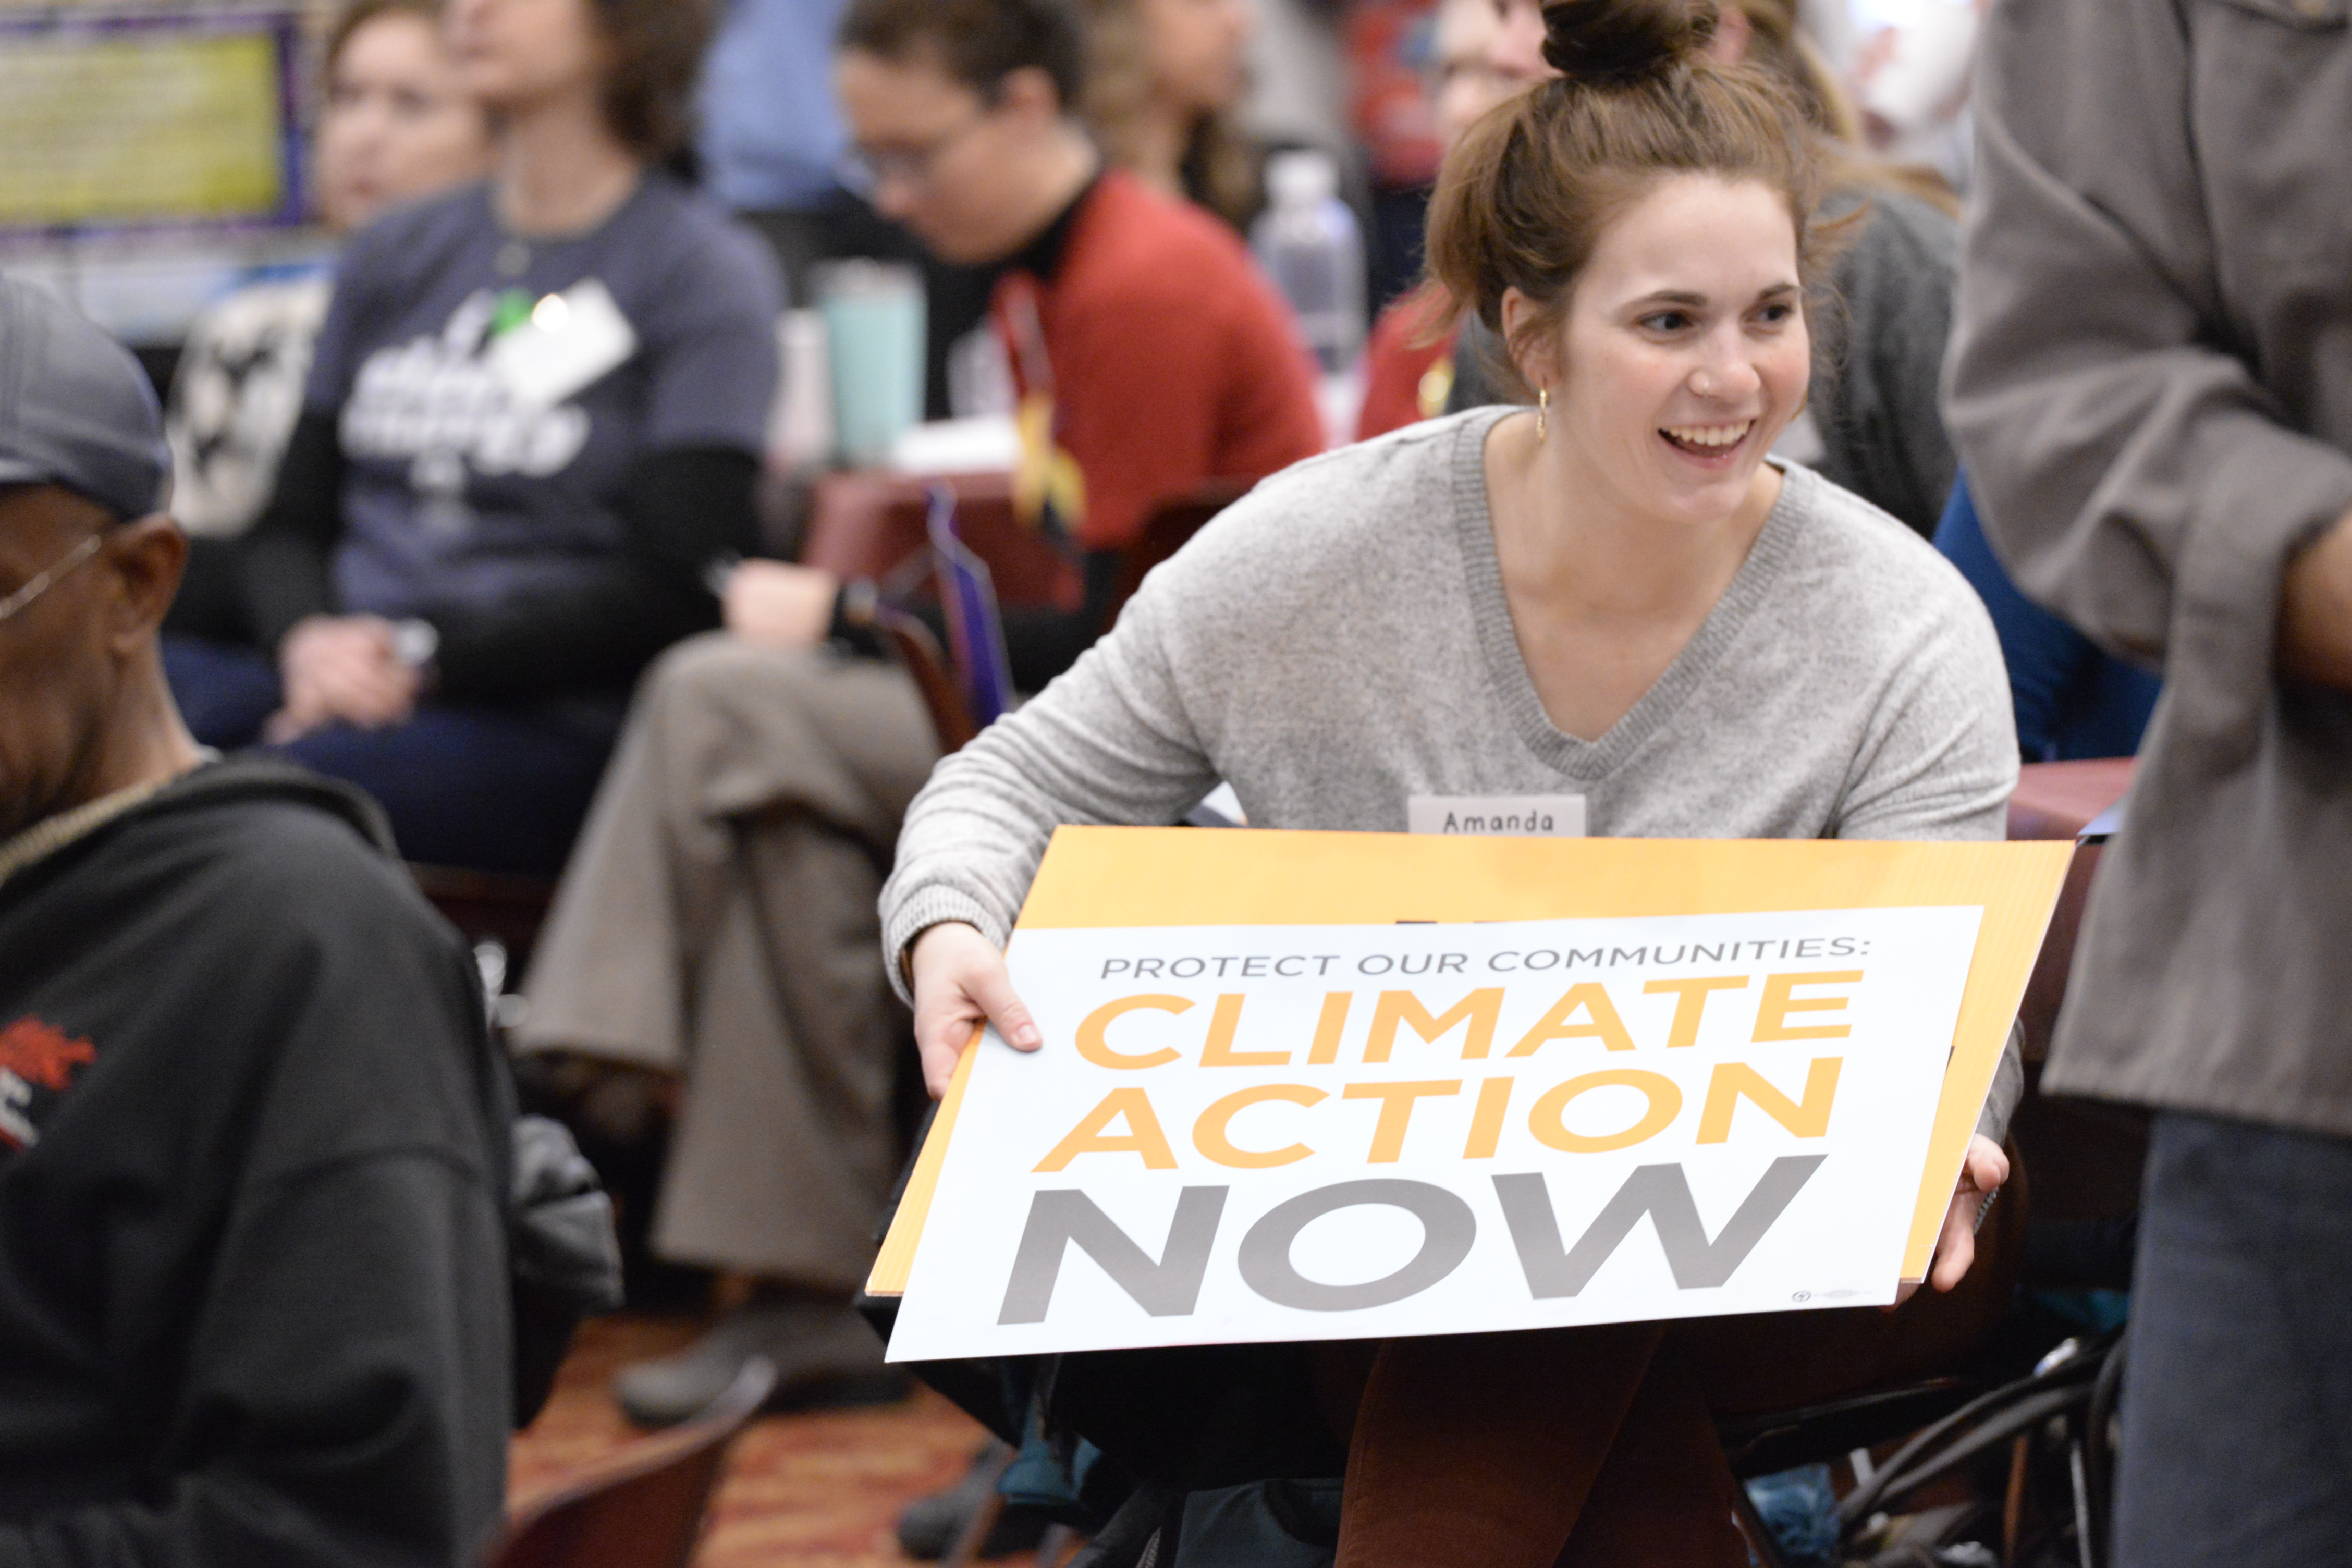 Young woman holding sign that says Climate Action Now